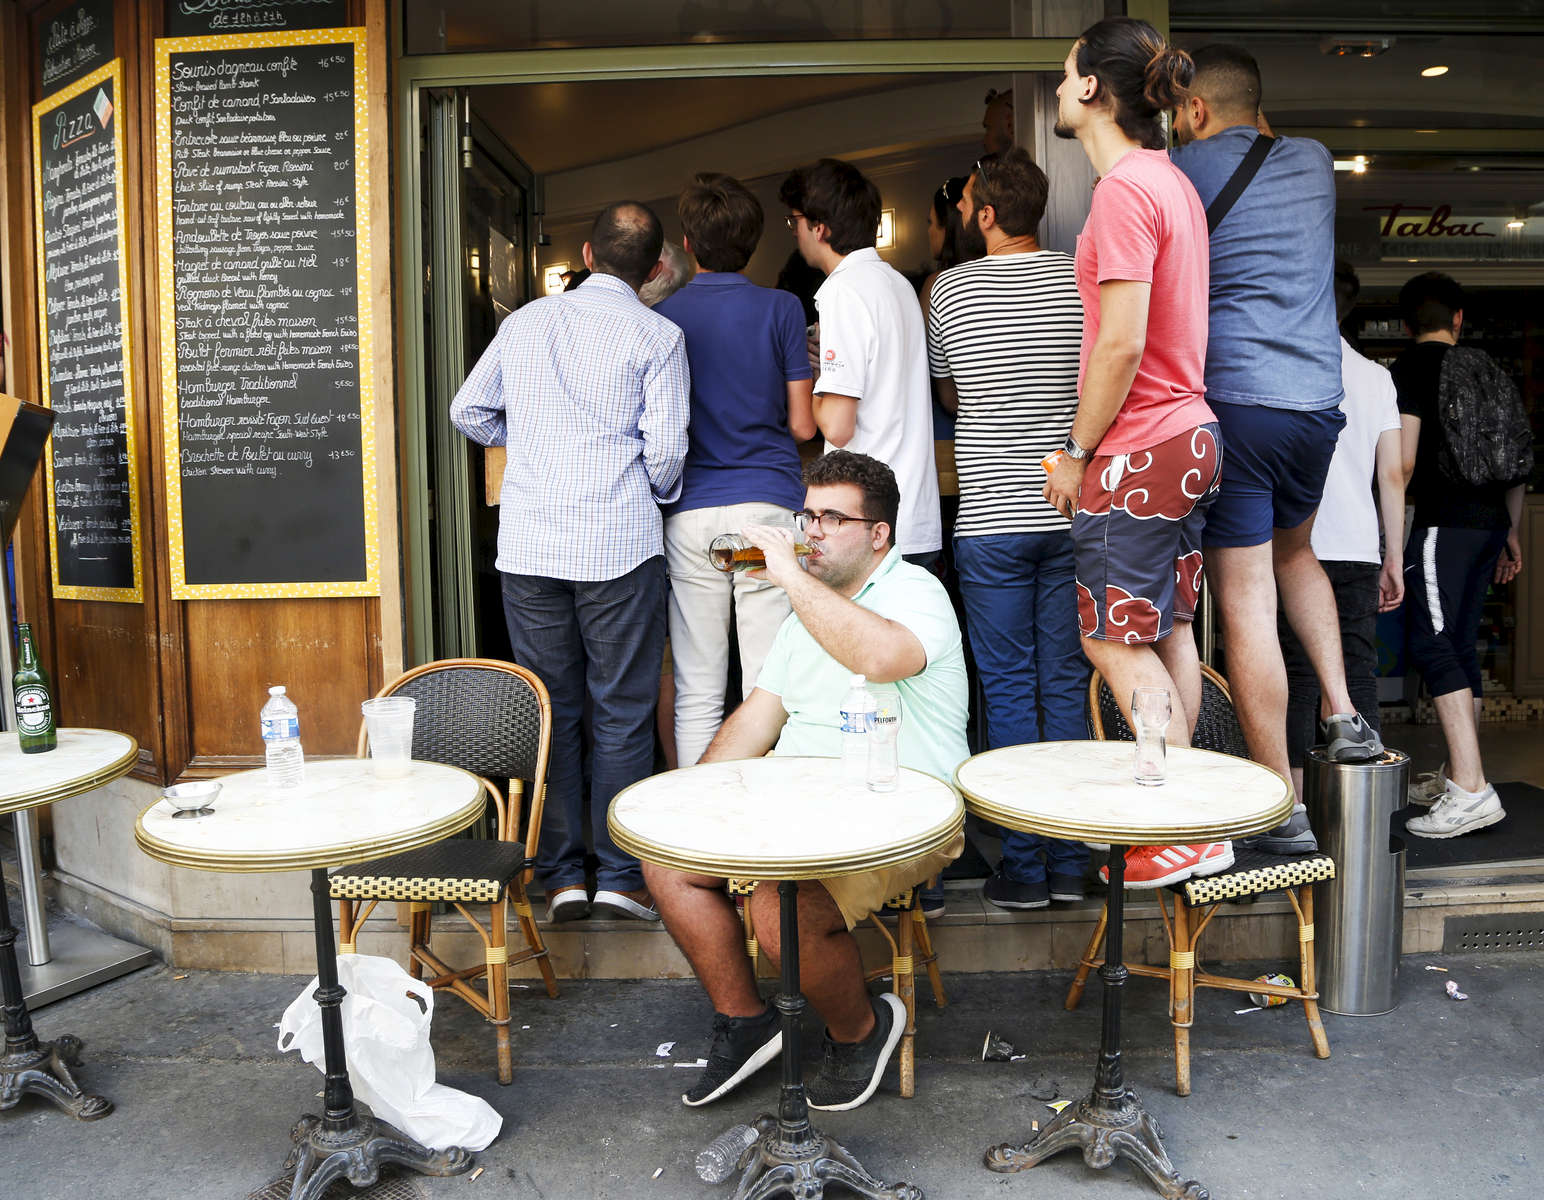 Supporters try to watch the World Cup Soccer final on the TV screen of a bar, on July 15, 2018, in Paris, France.